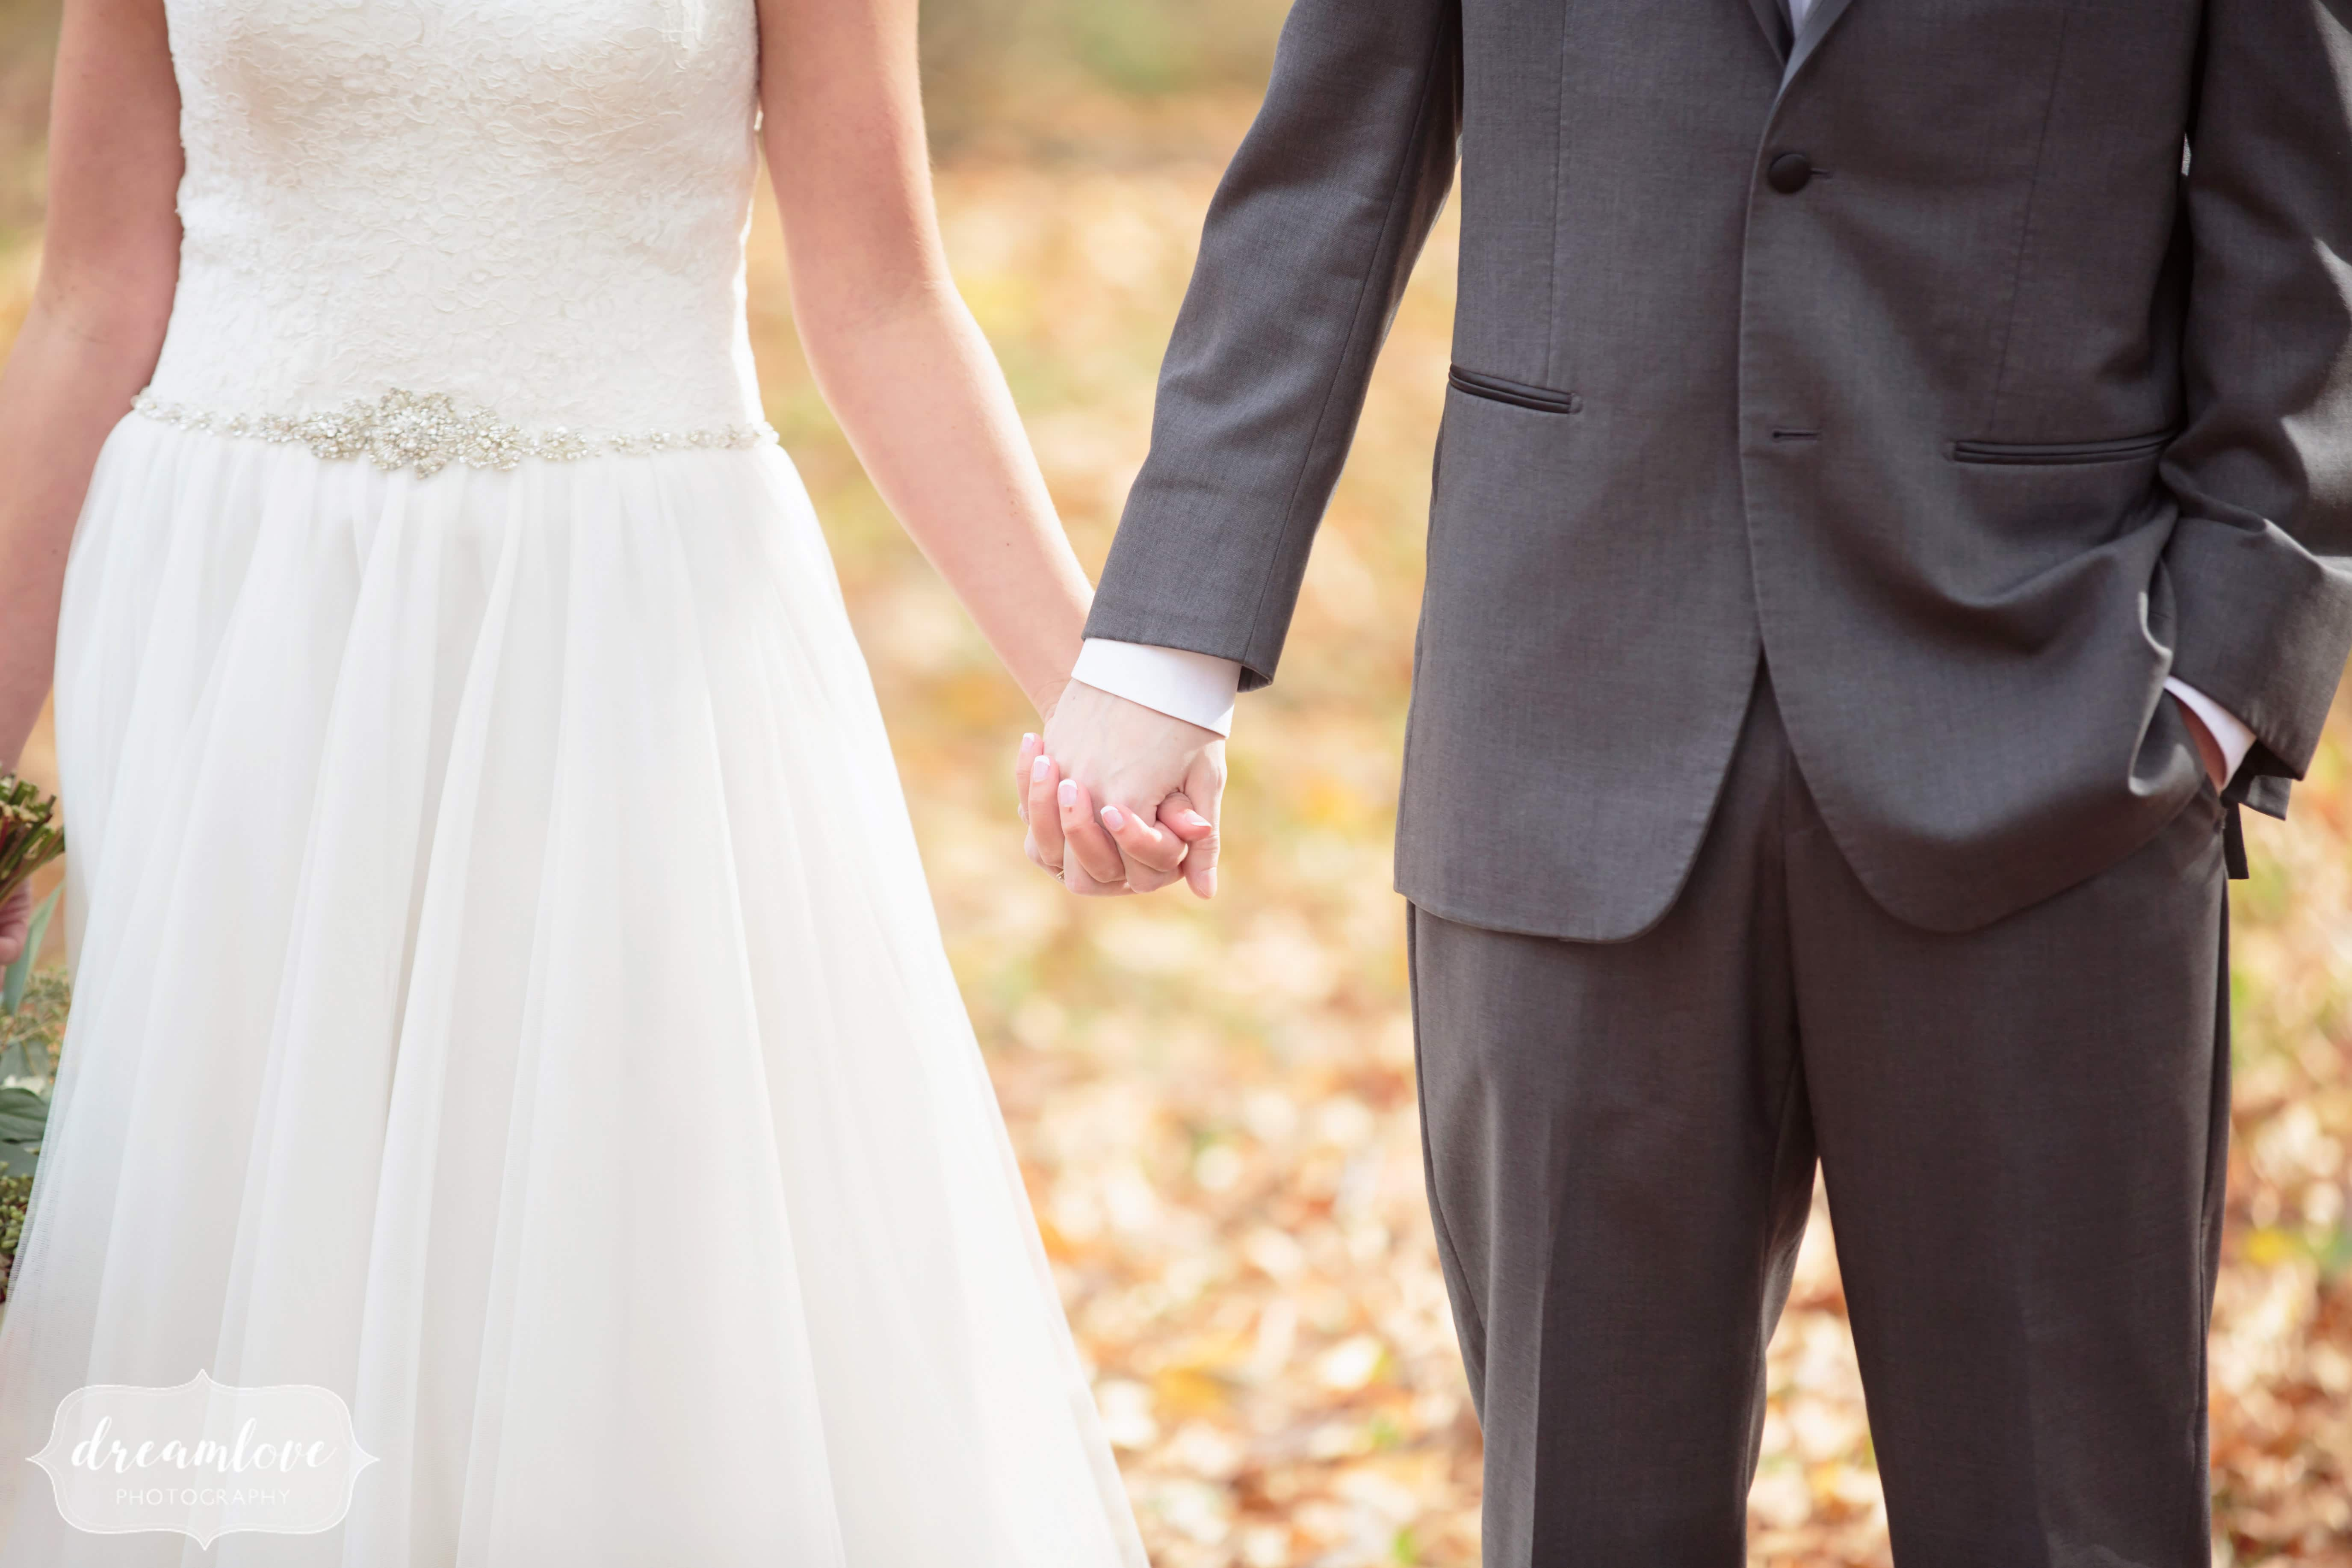 Unique wedding photography of the bride and groom holding hands in the forest.